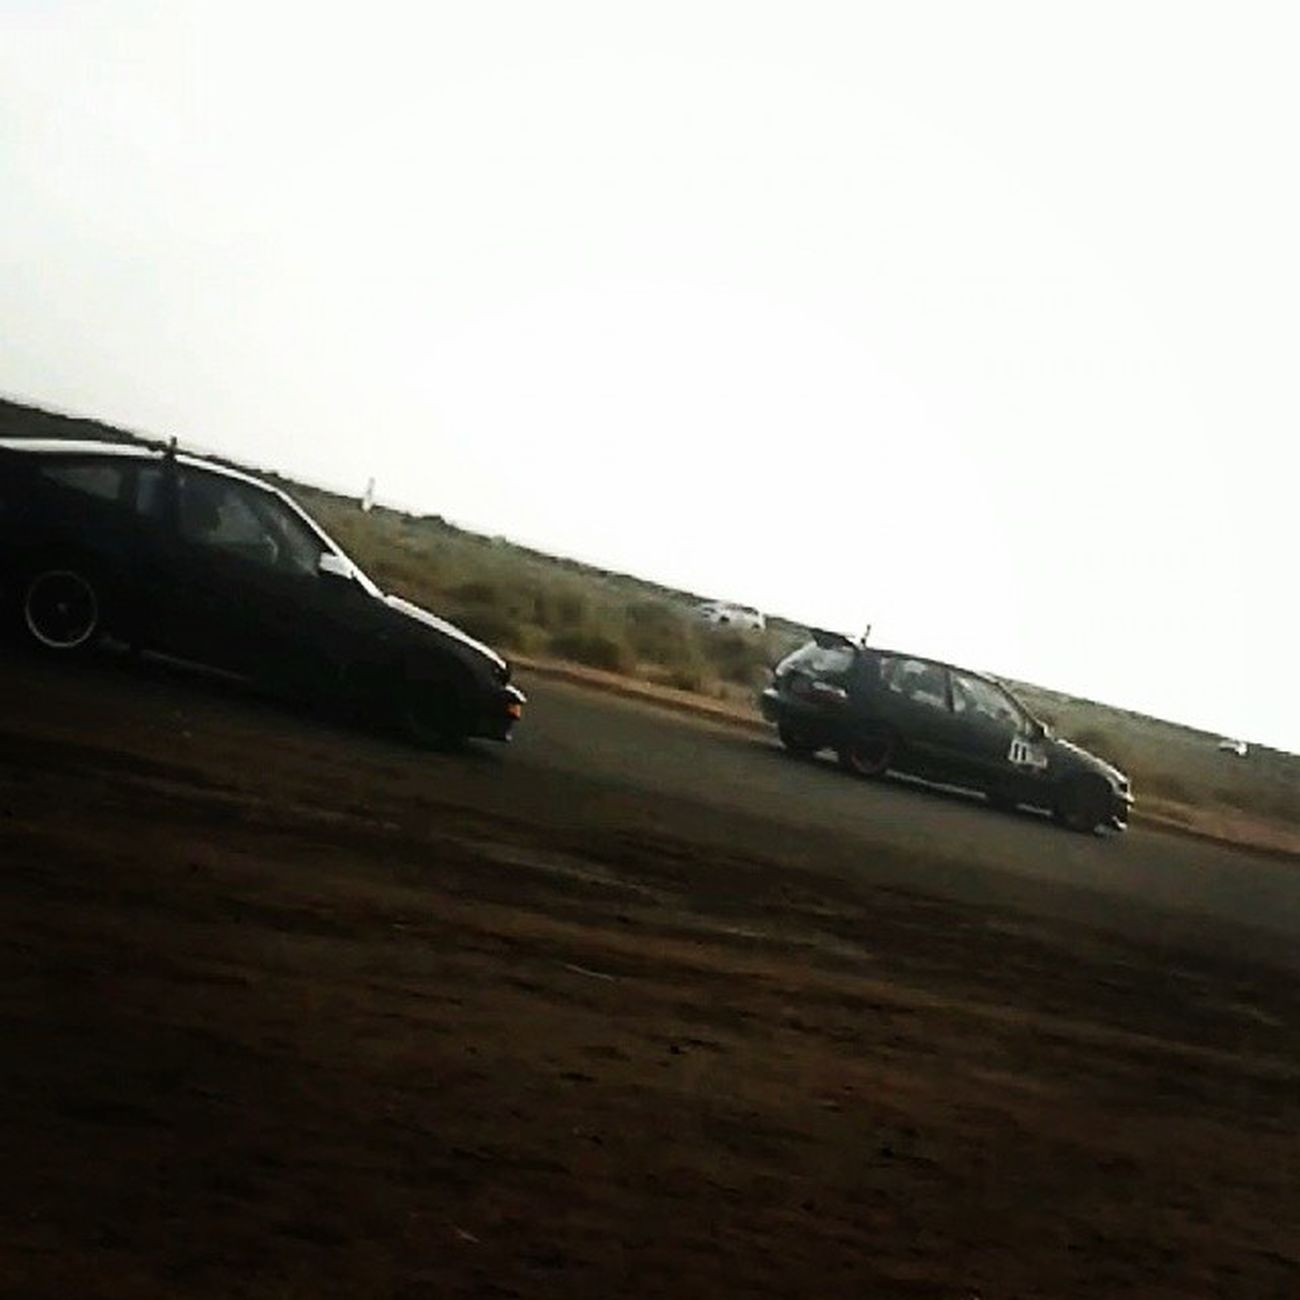 Hoy tarde recreativa de piques level Arica xd ???Eg6 vs CRX